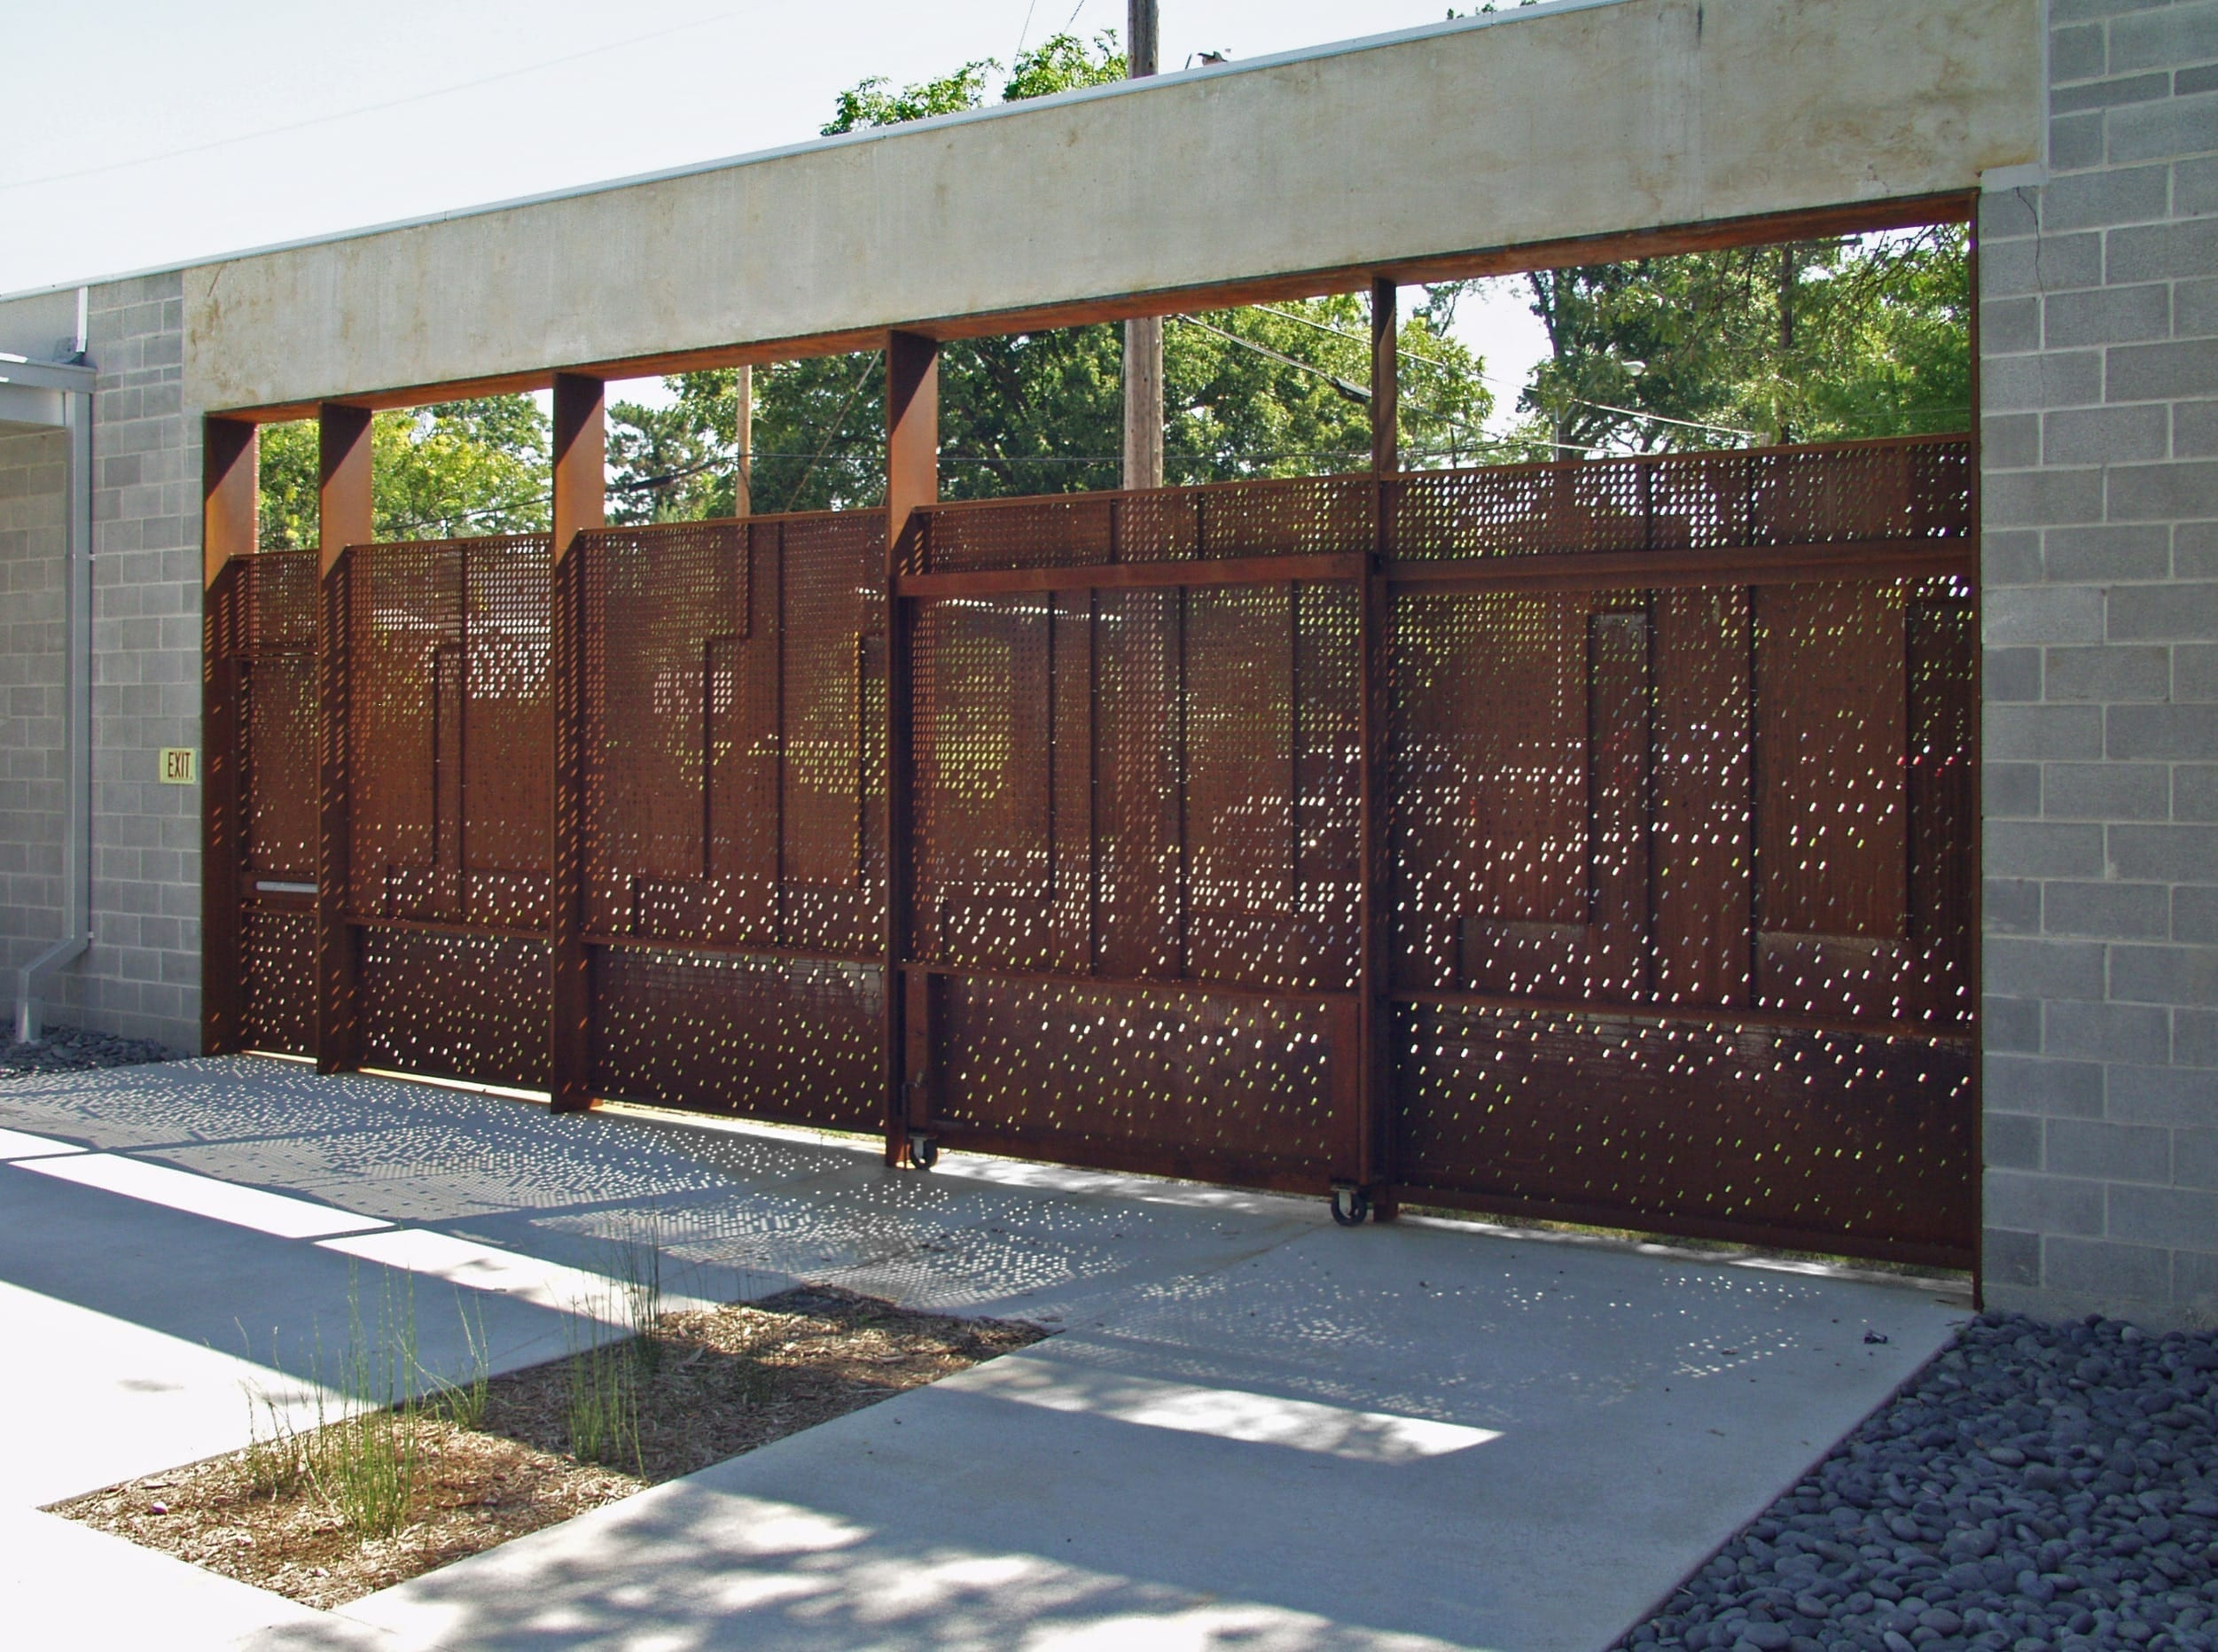 Light enters the space through the custom perforated steel for the Irving Courtyard screenwall at KCAI.